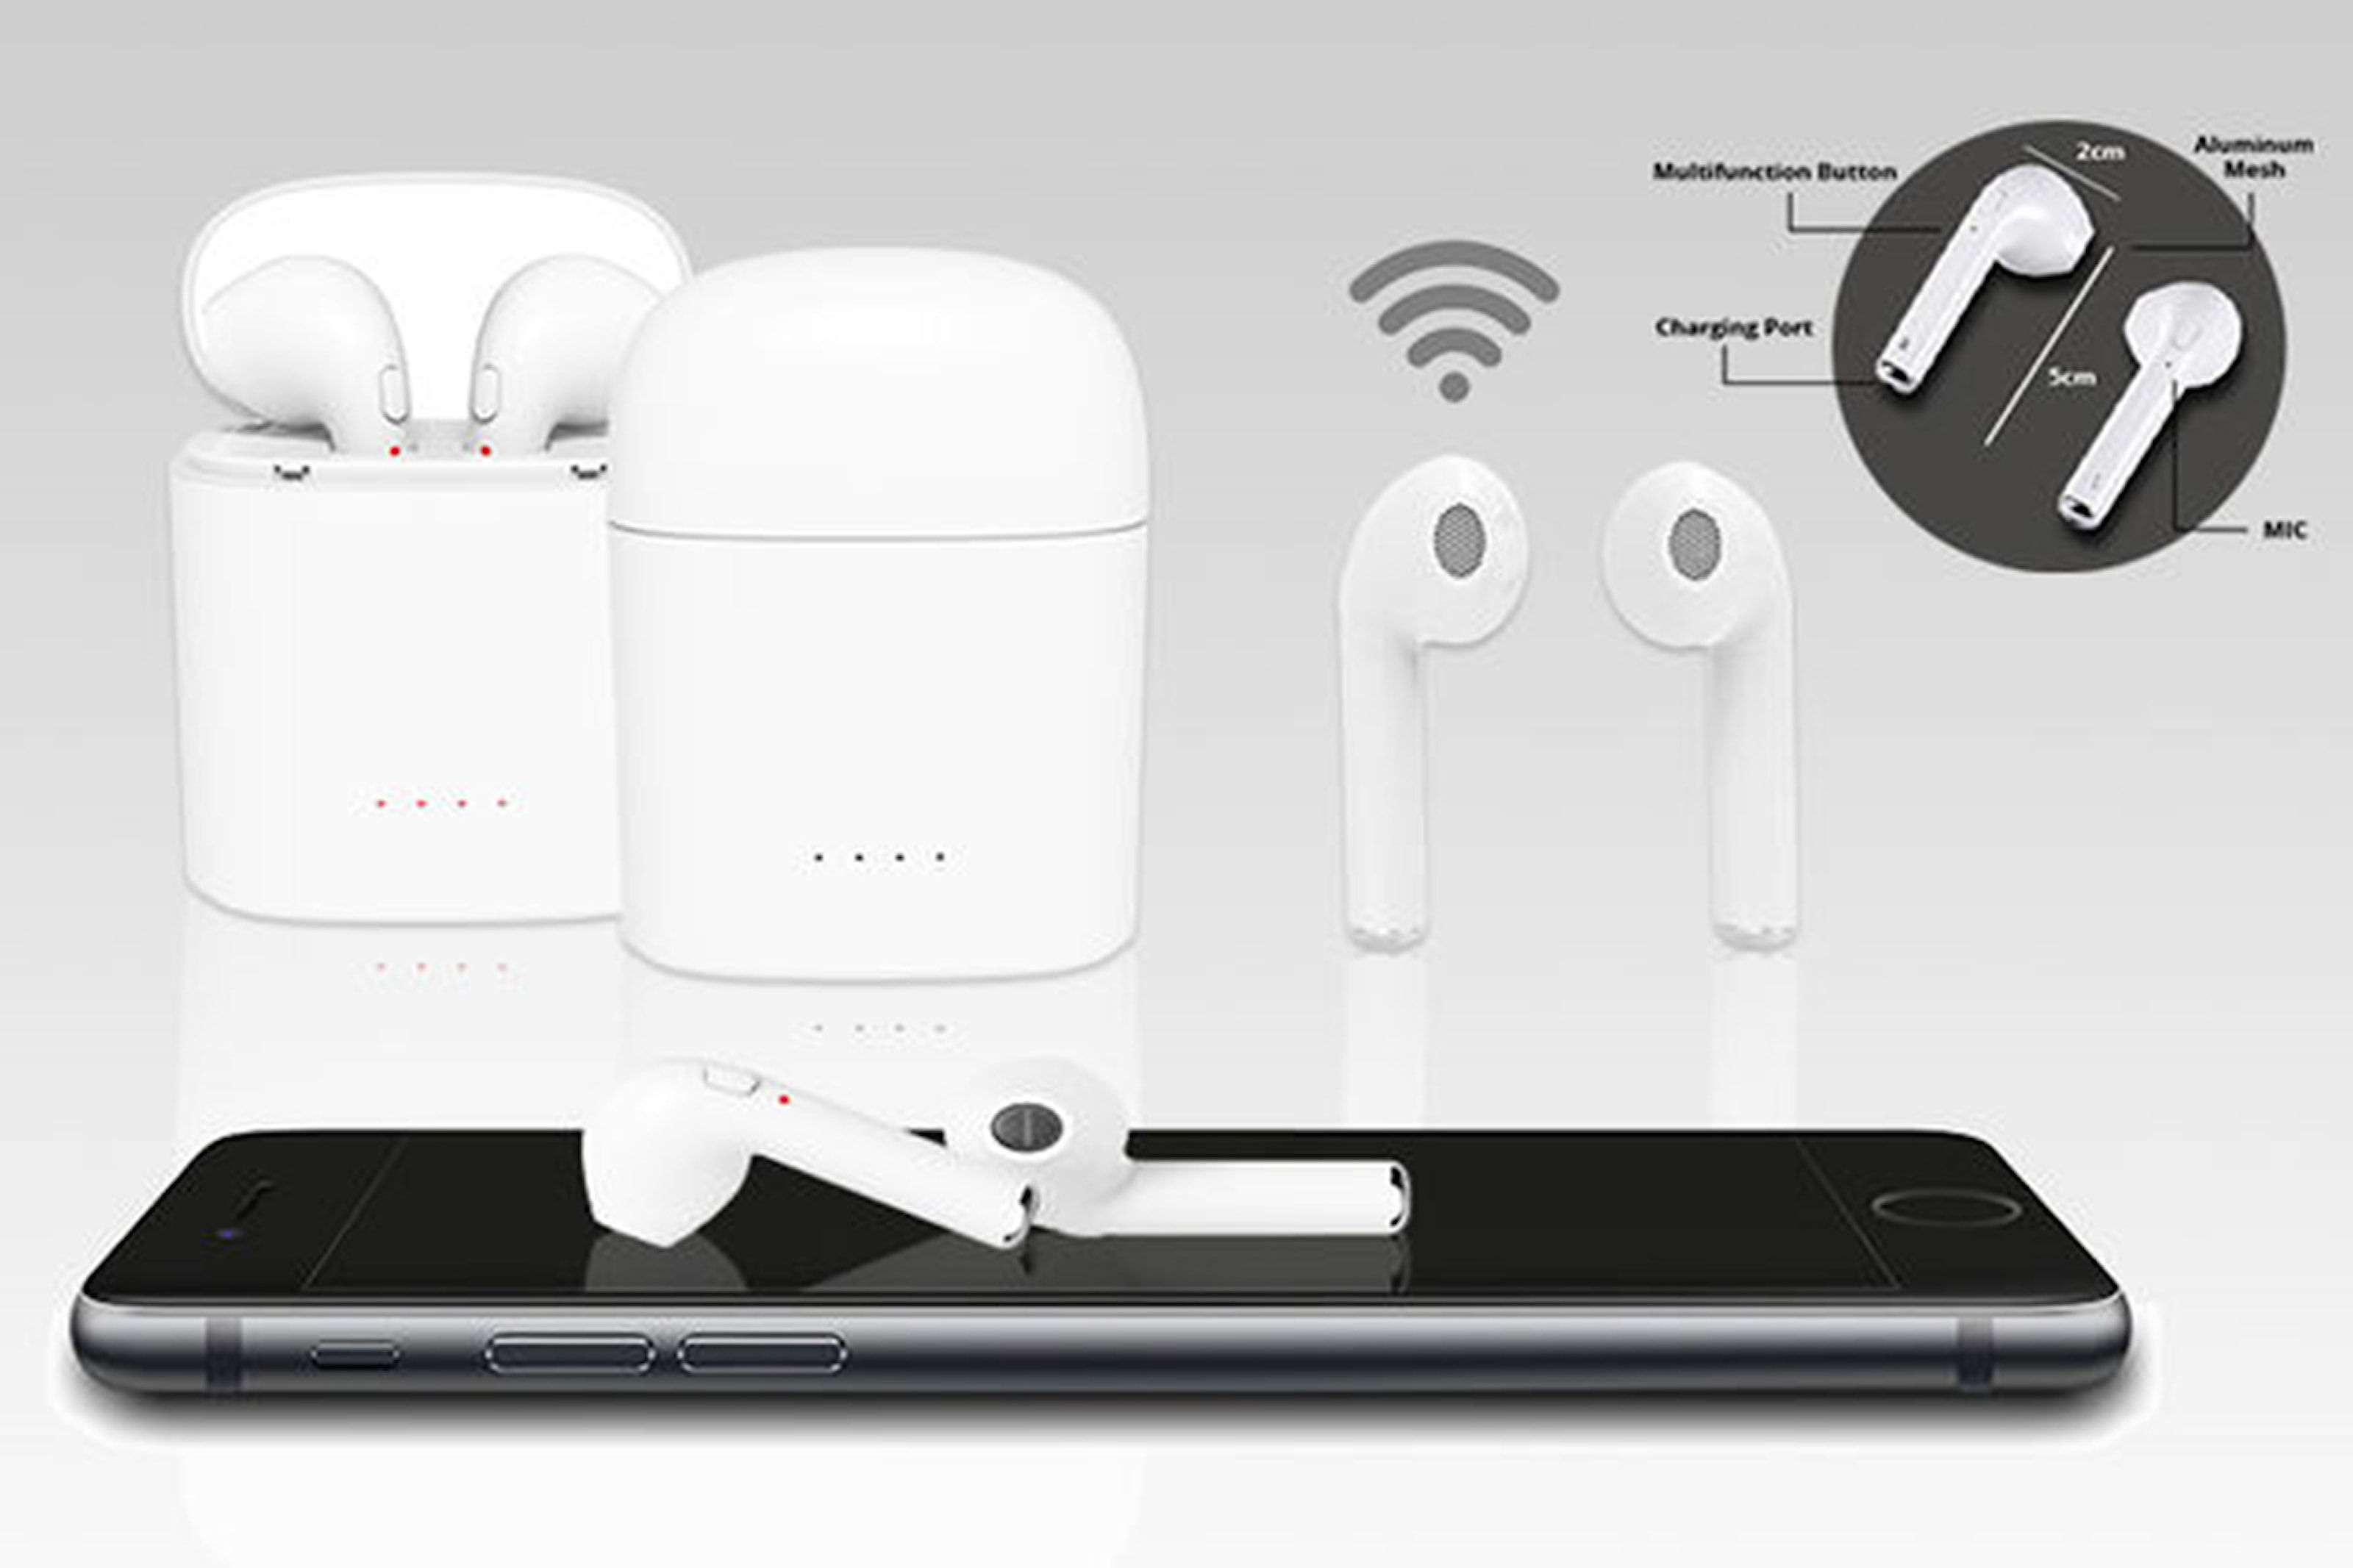 Apple-kompatible earbuds med ladeetui